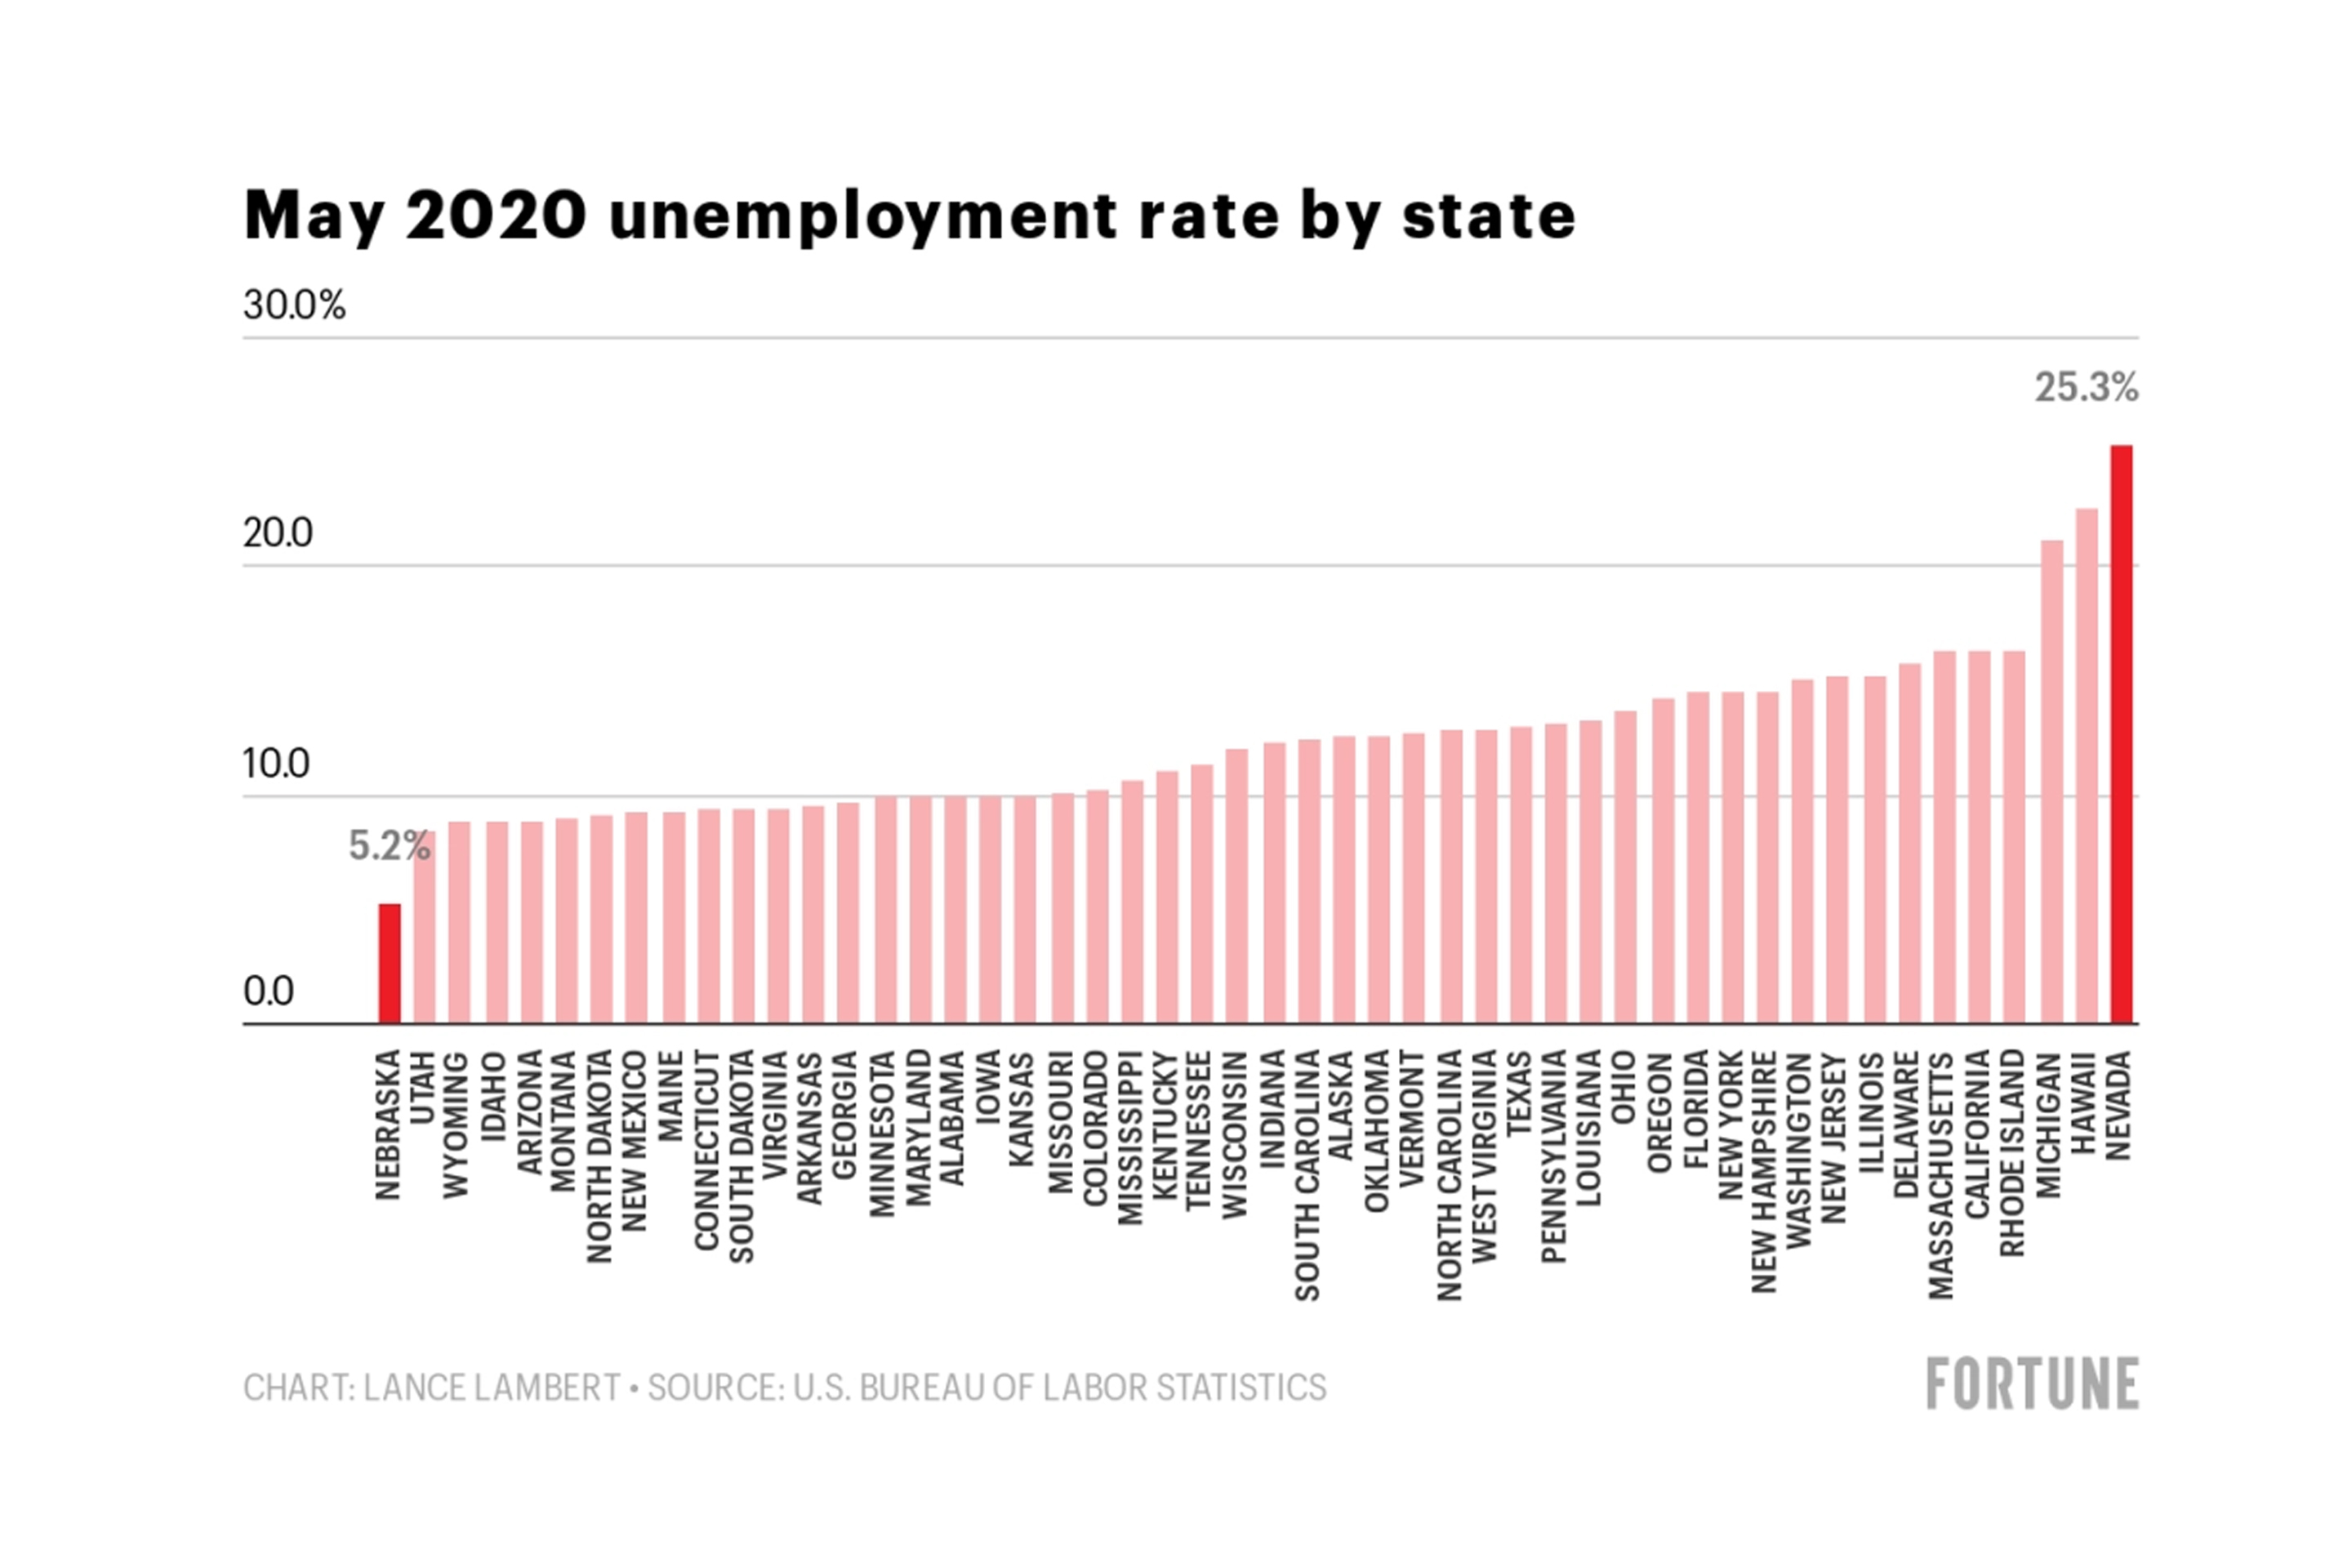 How Is The U S Economy Doing 8 Charts On Unemployment Rate Benefits Claims Consumer Spending Lob Losses State By State Analysis Amid Coronavirus Pandemic Fortune